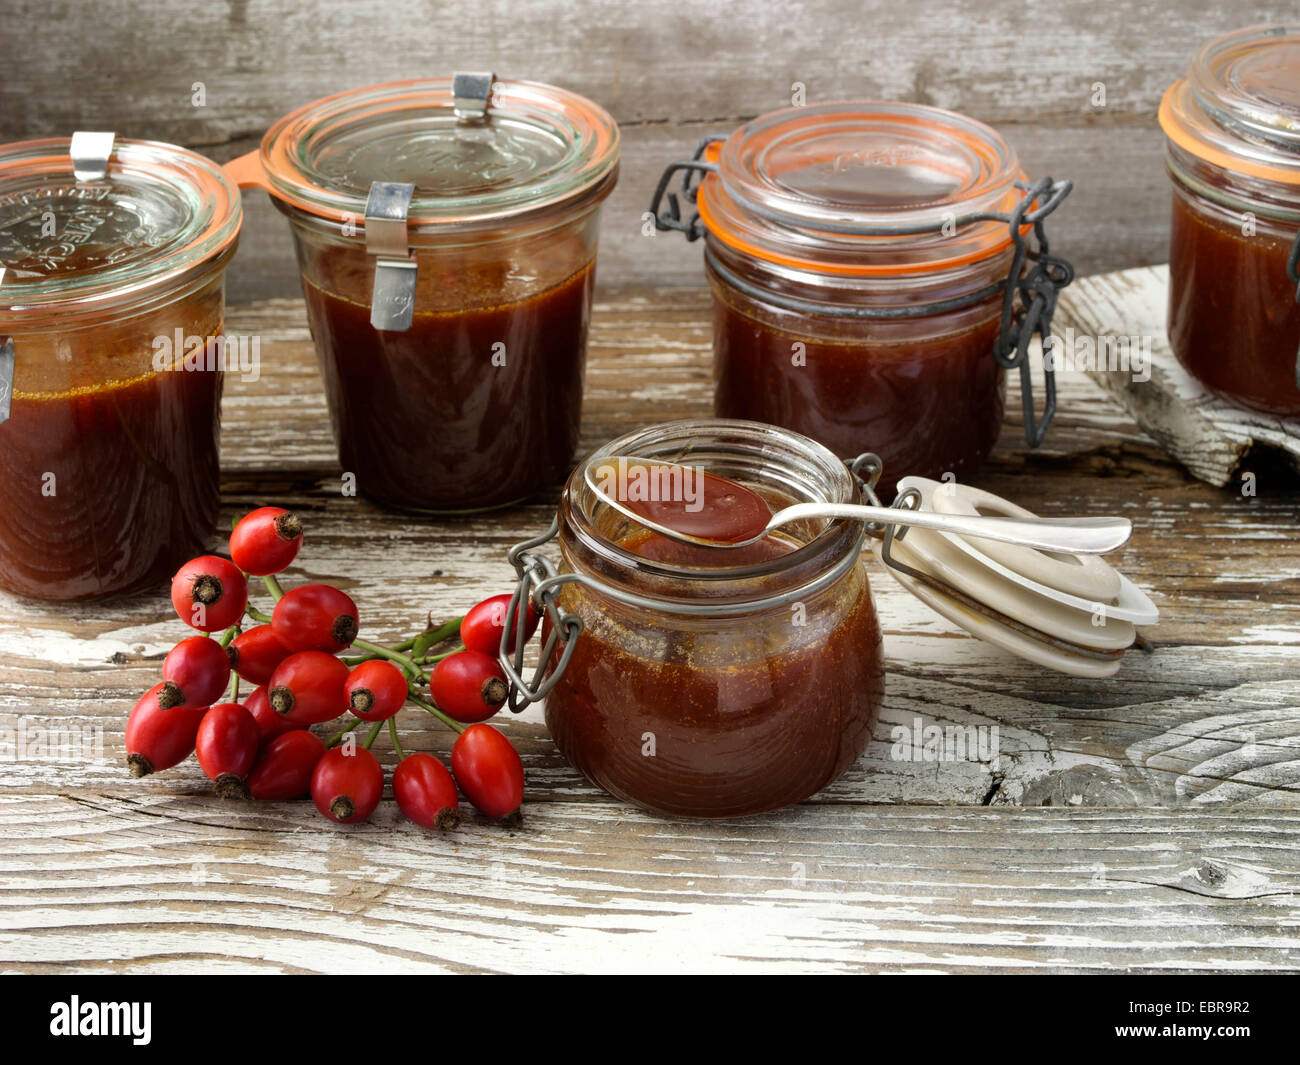 Rose hip jelly - Stock Image